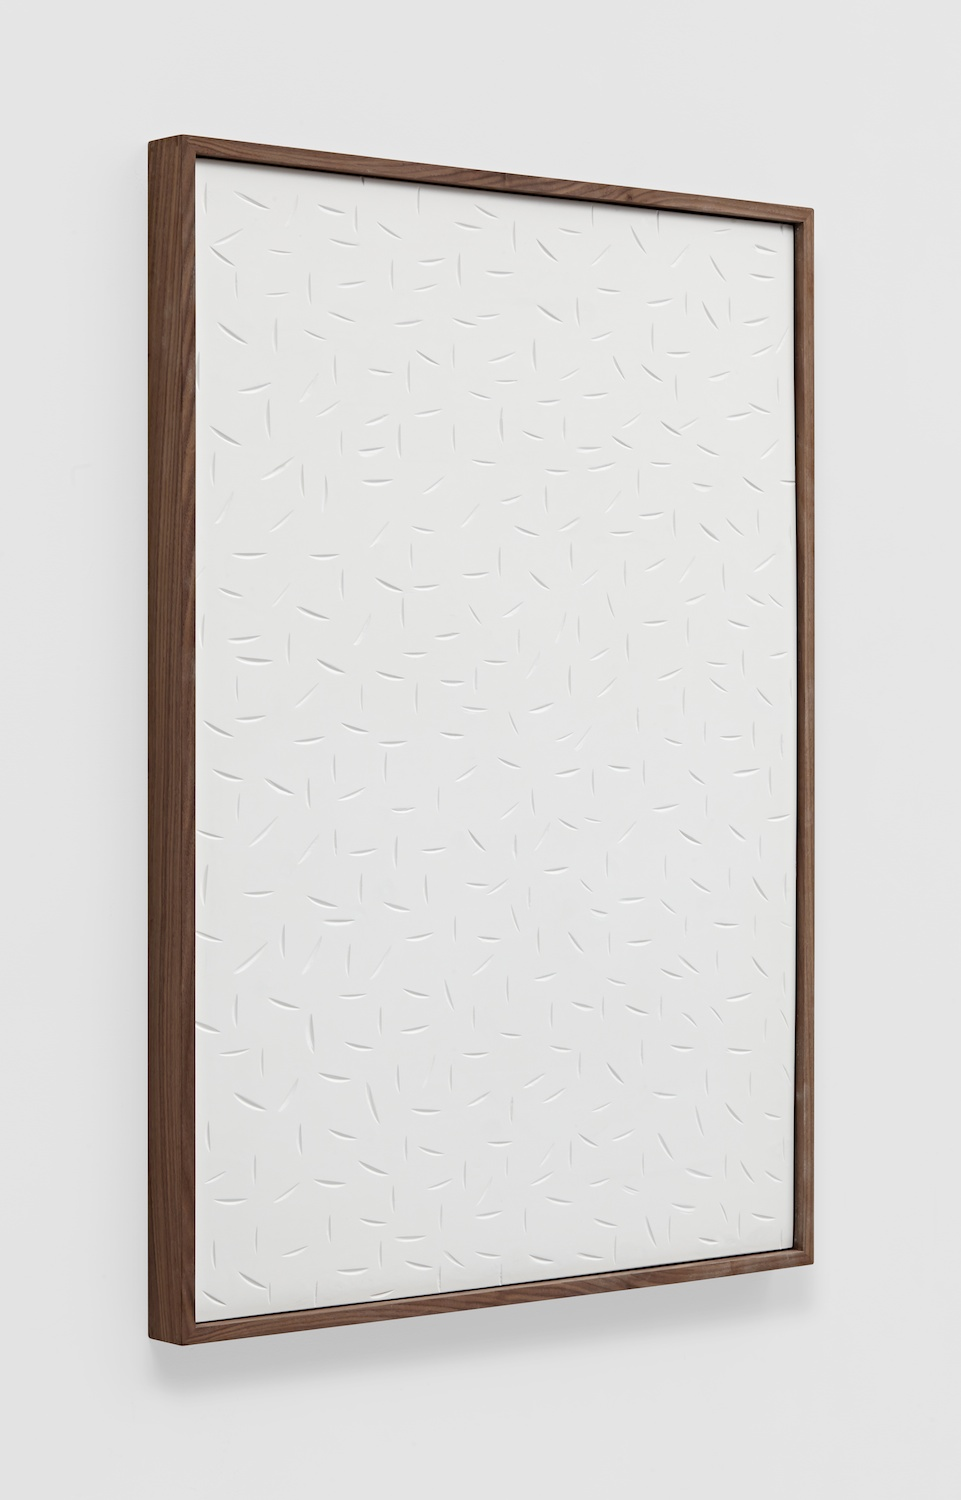 Anthony Pearson  Untitled (Etched Plaster)  2014 Pigmented hydrocal in walnut frame 43 ½h x 31 ½w x 2 ½d in AP357